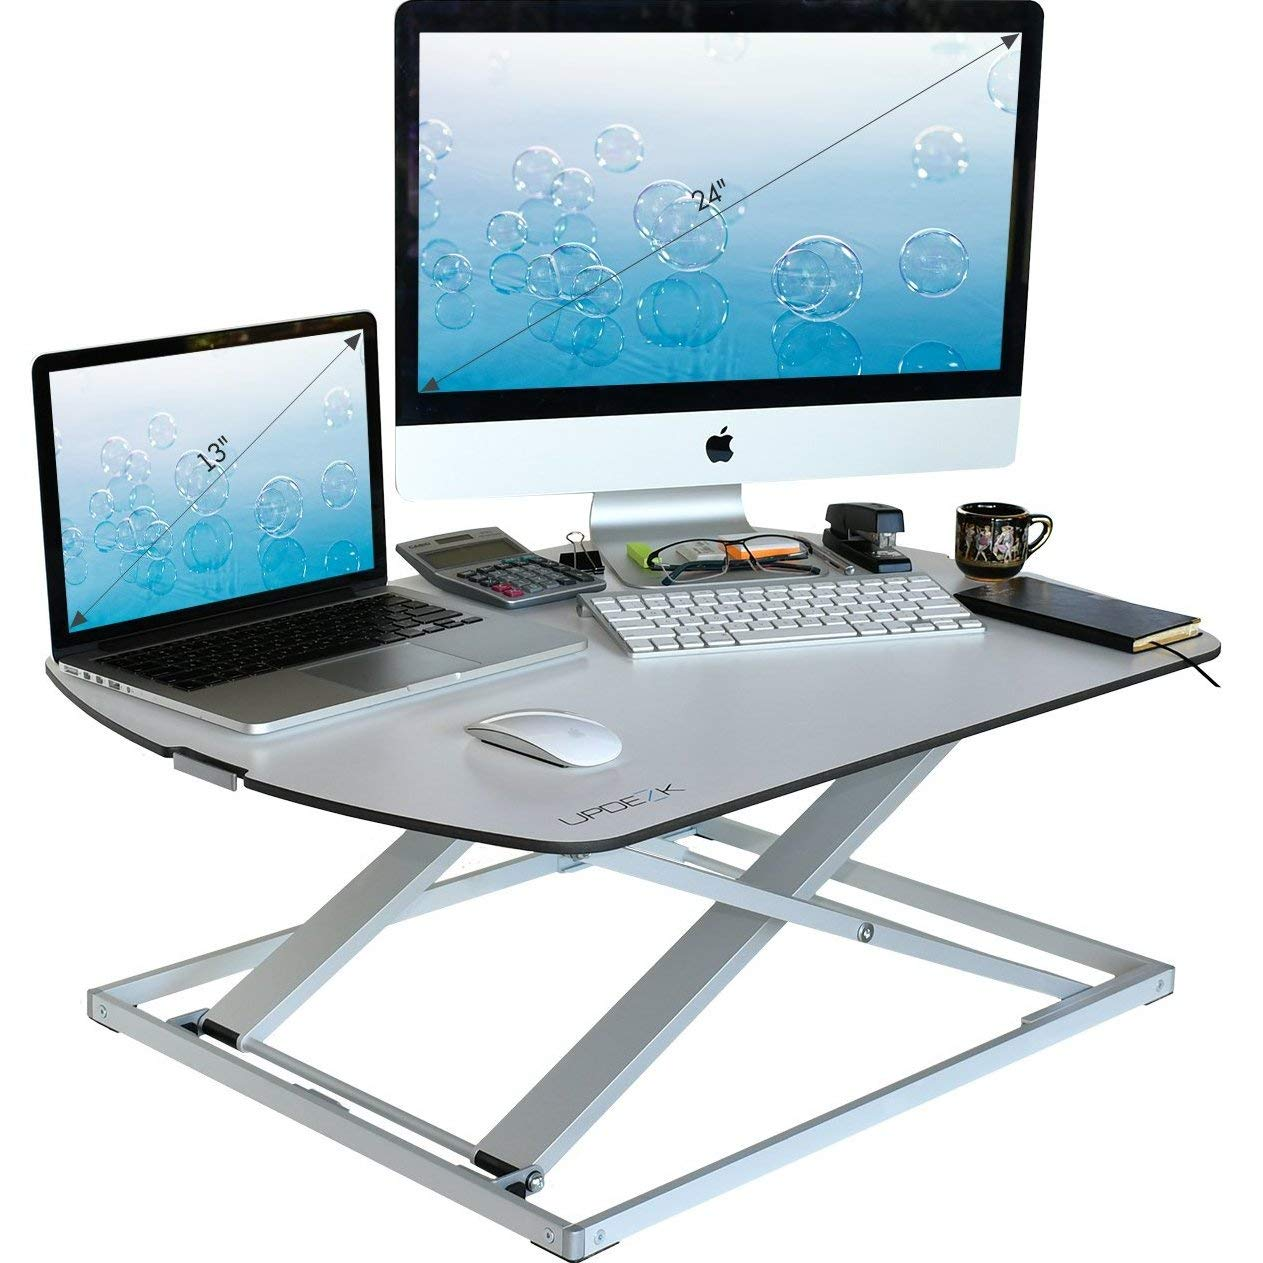 Height Adjustable Standing Desk Converter - Stand Up Desk Used as Computer and Monitor Stand - Ultra Slim Stunning Design - White - 31''x22''